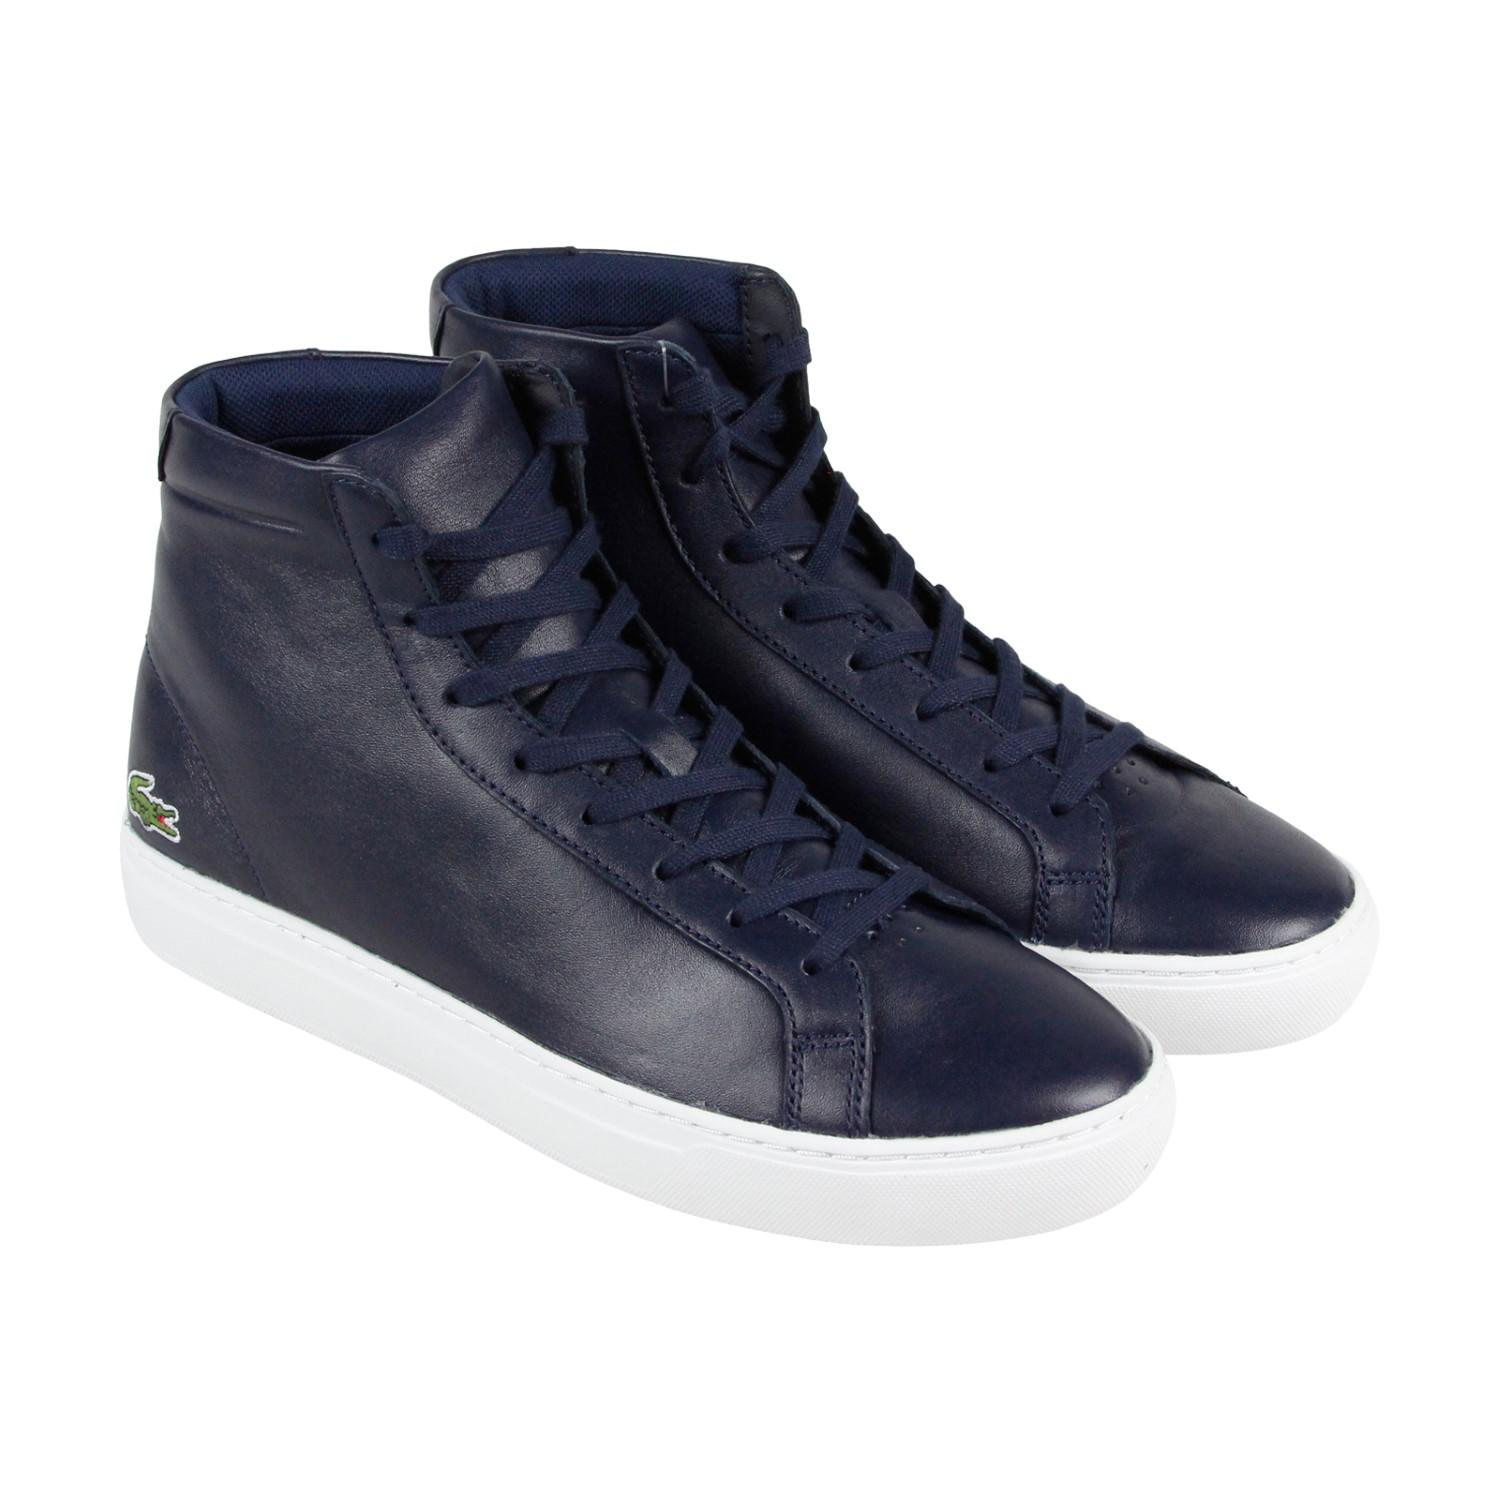 99007b6e36 Lacoste L.12.12 Mid 316 1 Cam Blue Mens High Top Sneakers in Blue ...